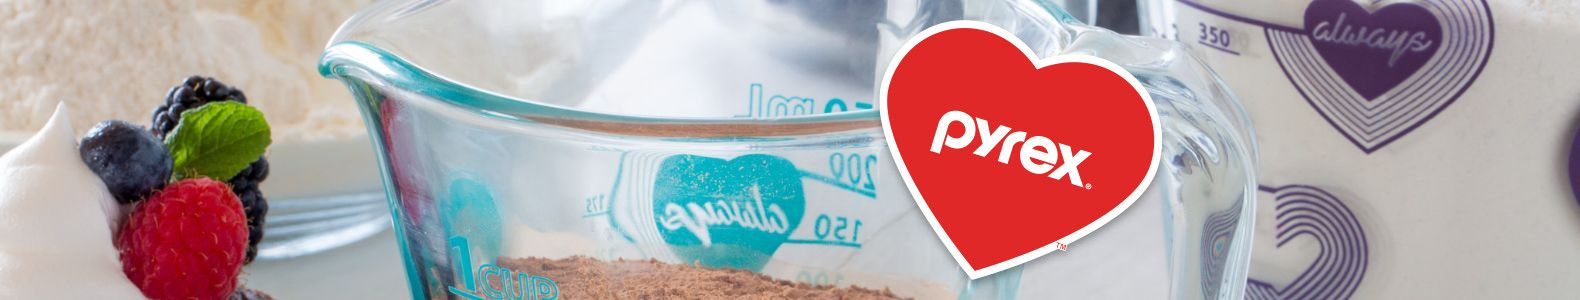 pyrex_love_category_banner